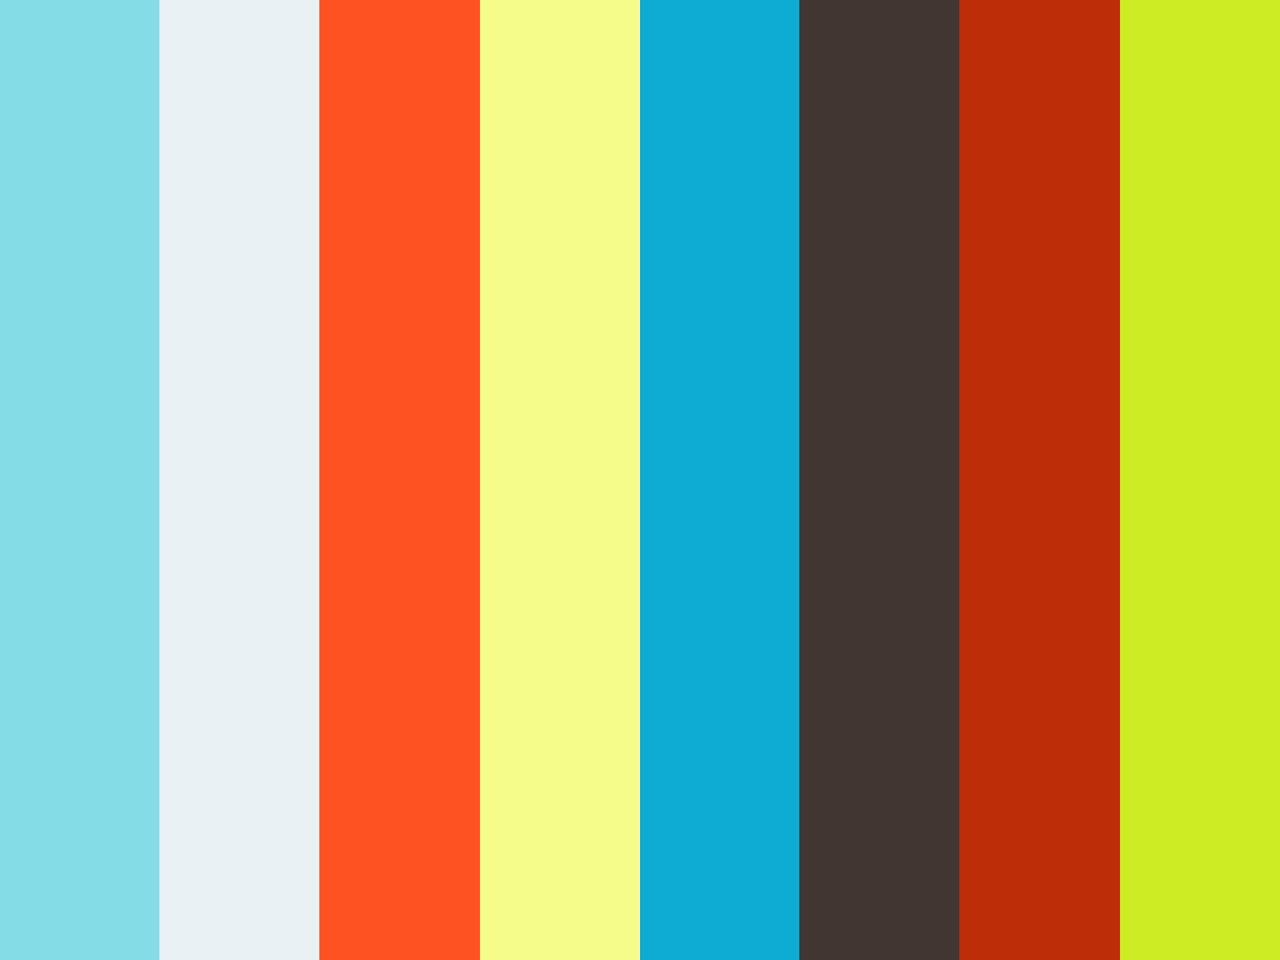 gorm, switch noseslide, southsea, 1998